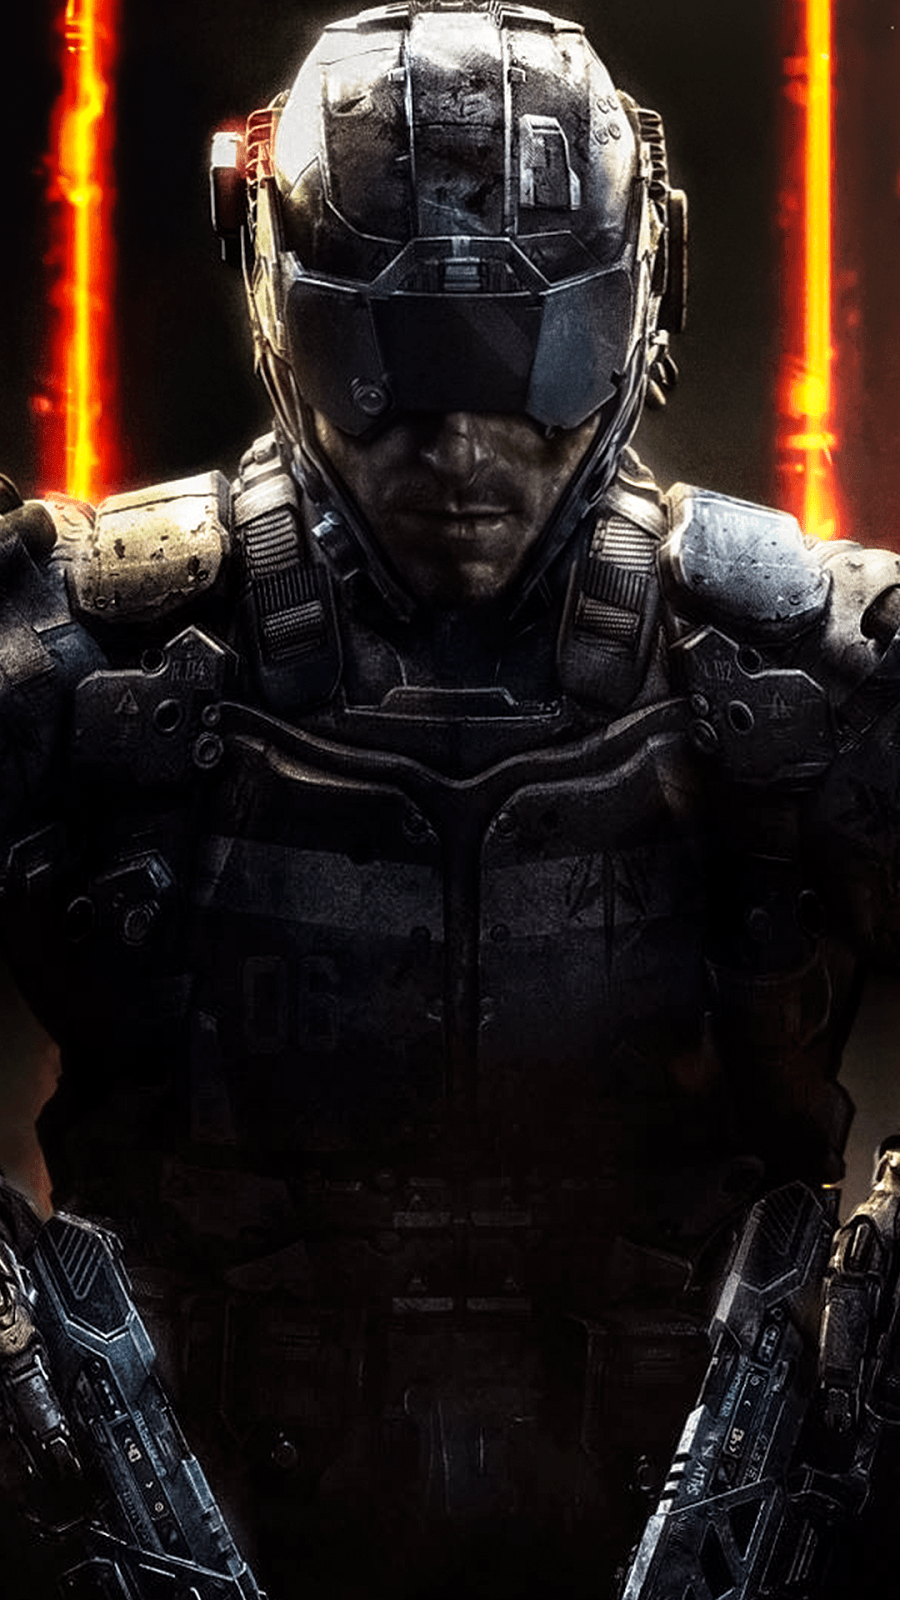 Call Of Duty Black Ops 3 Wallpaper Hd Iphone - clipartsgram.com